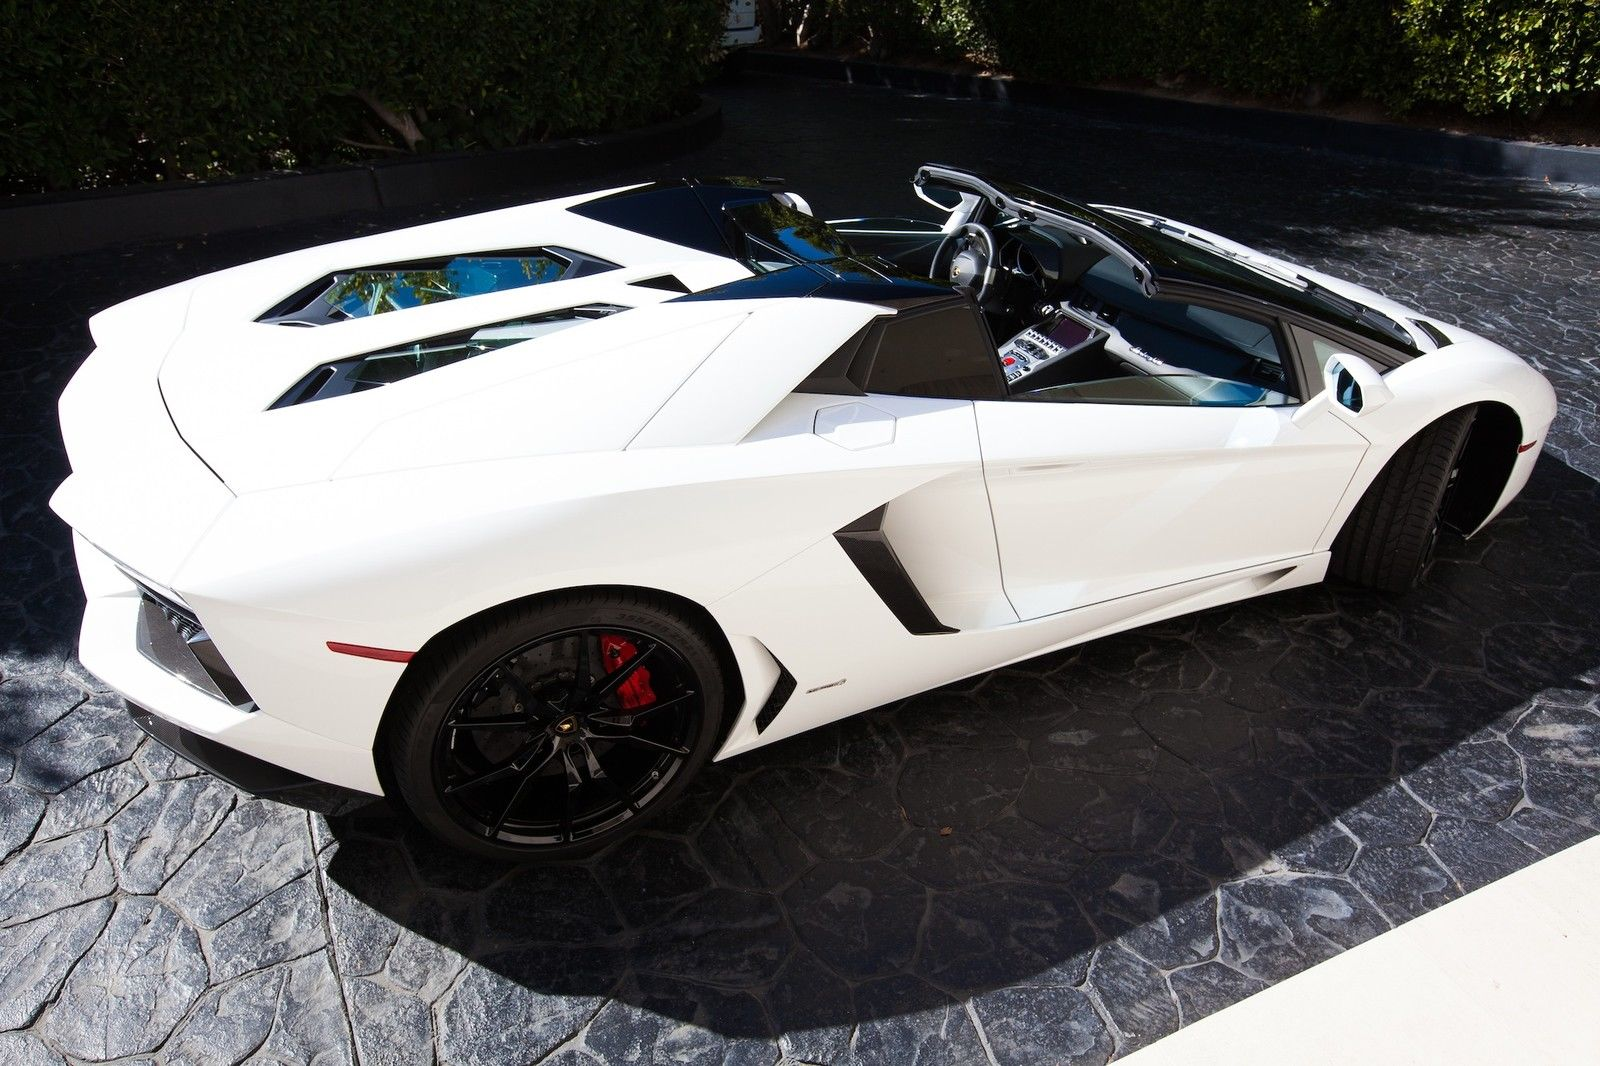 Dan Bilzerian Is Selling His Lamborghini Aventador